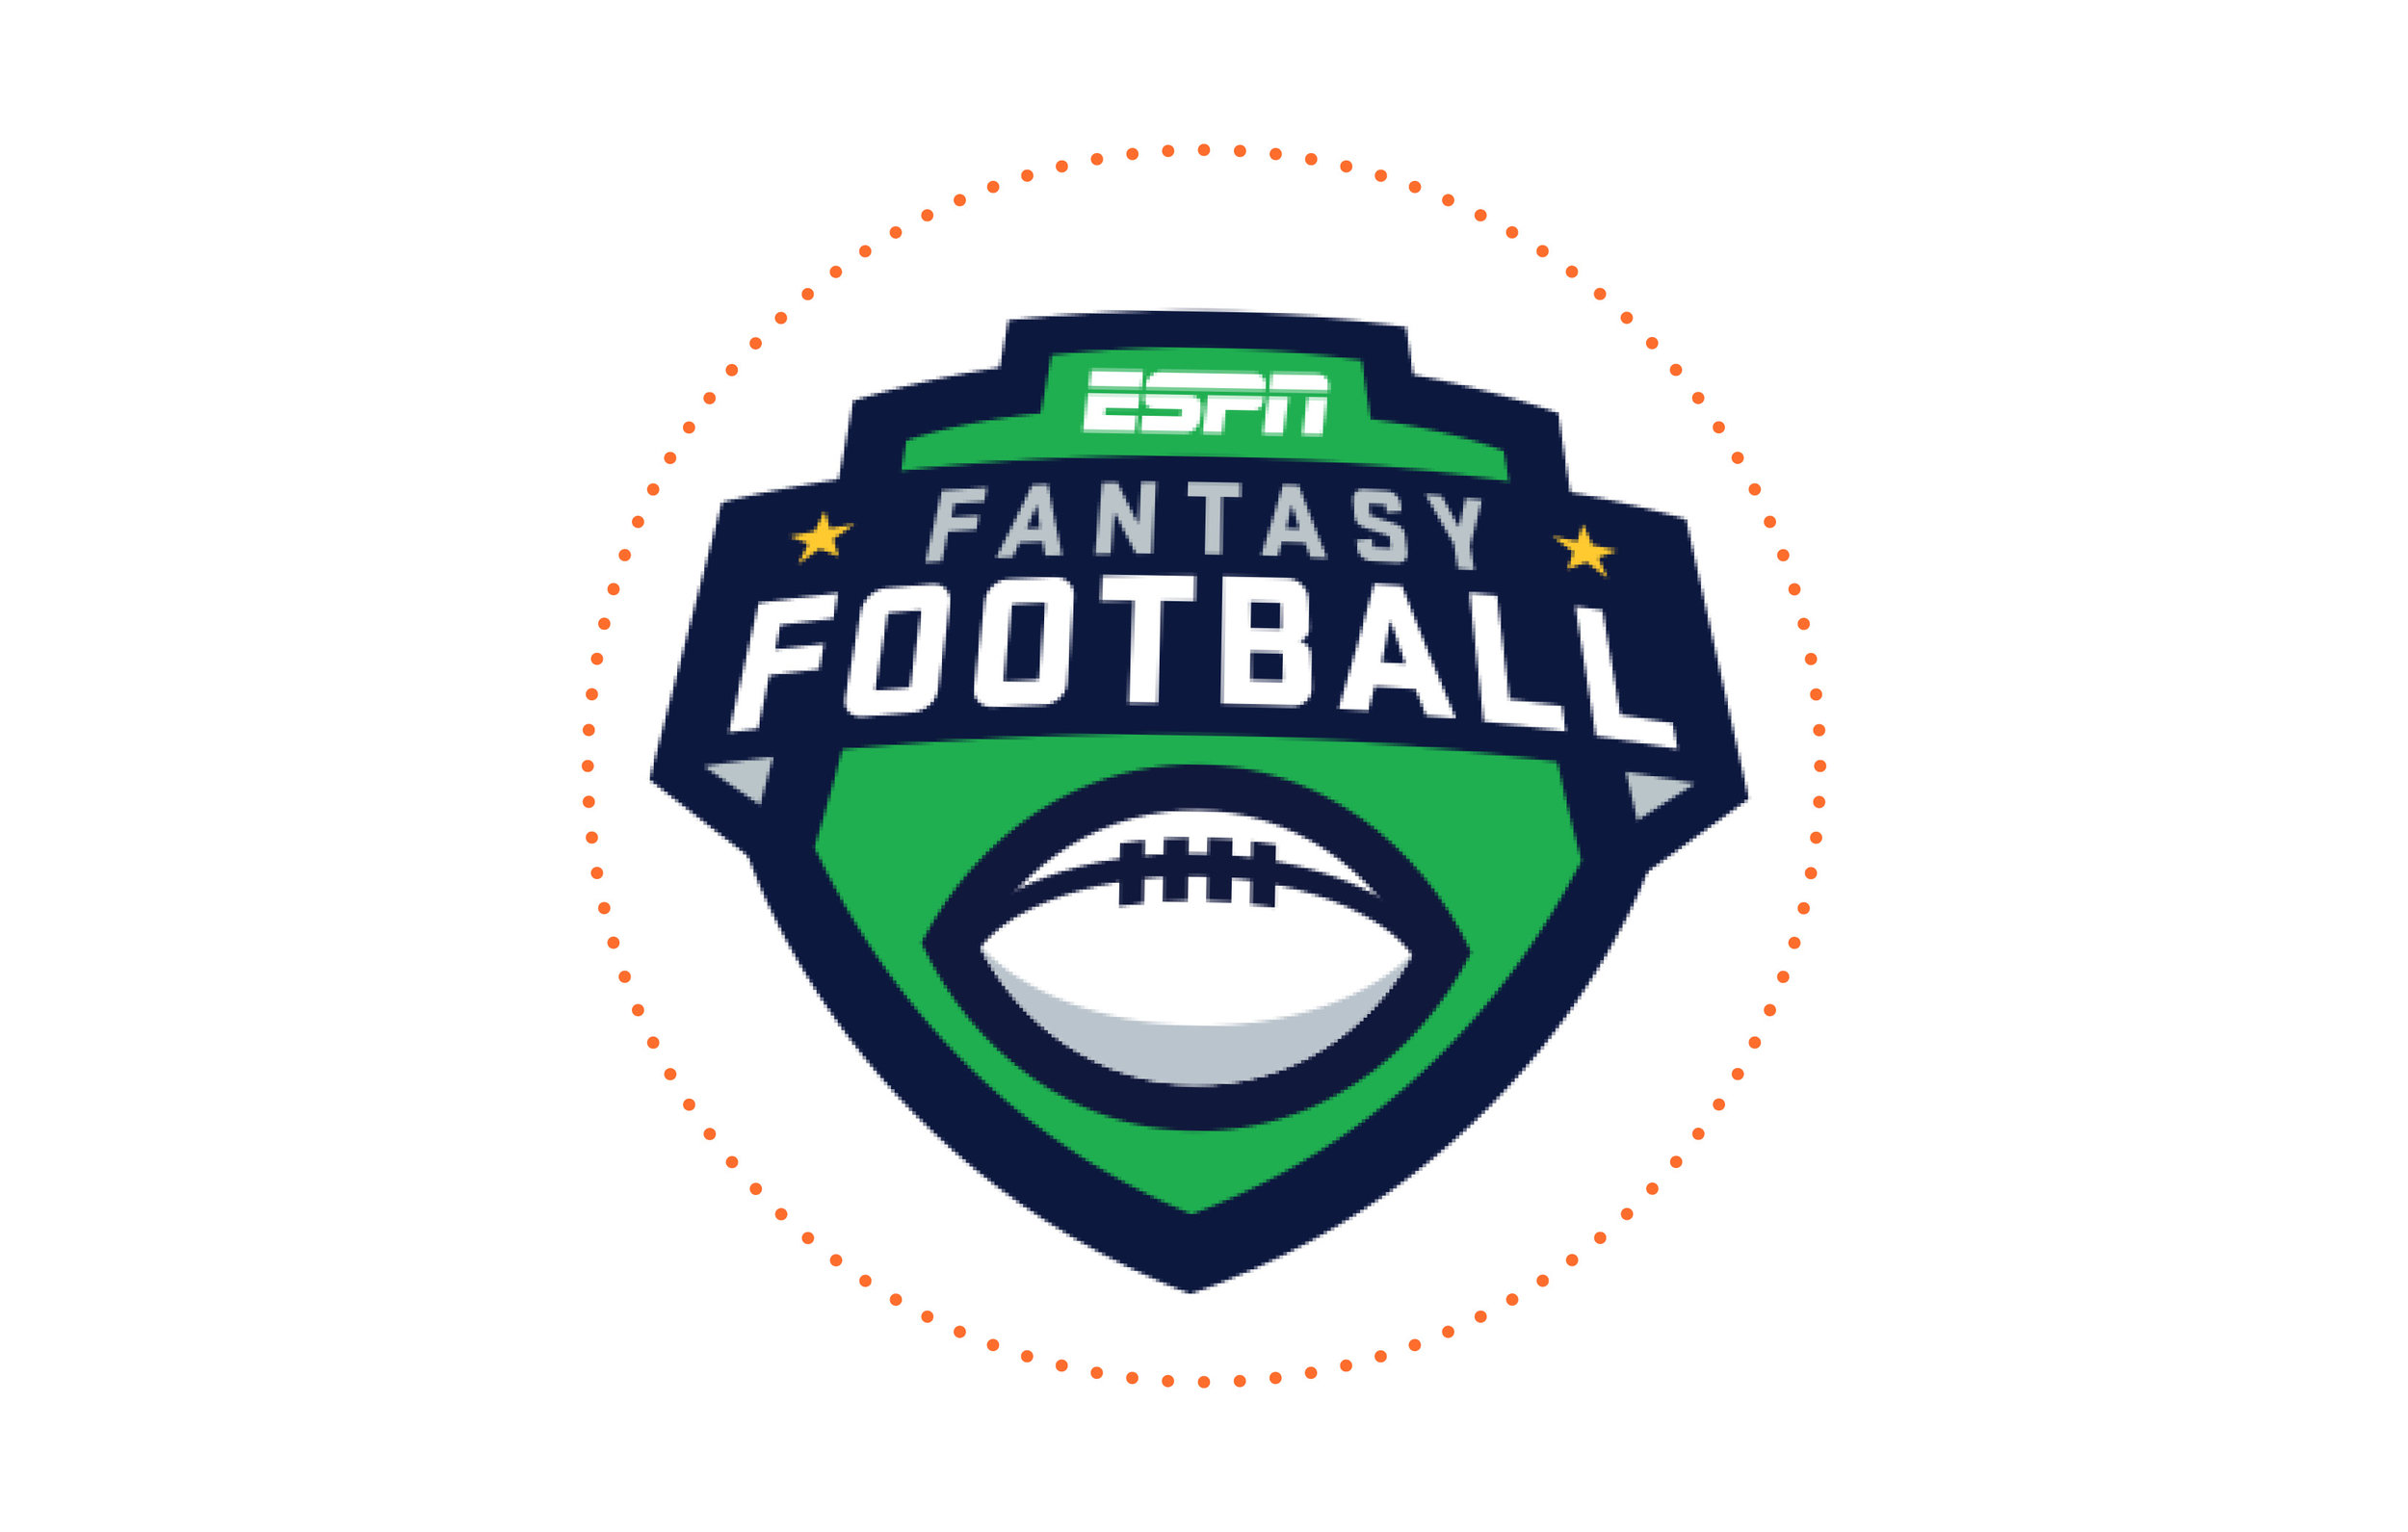 Little known fact? - I play fantasy football and I won the league this year!